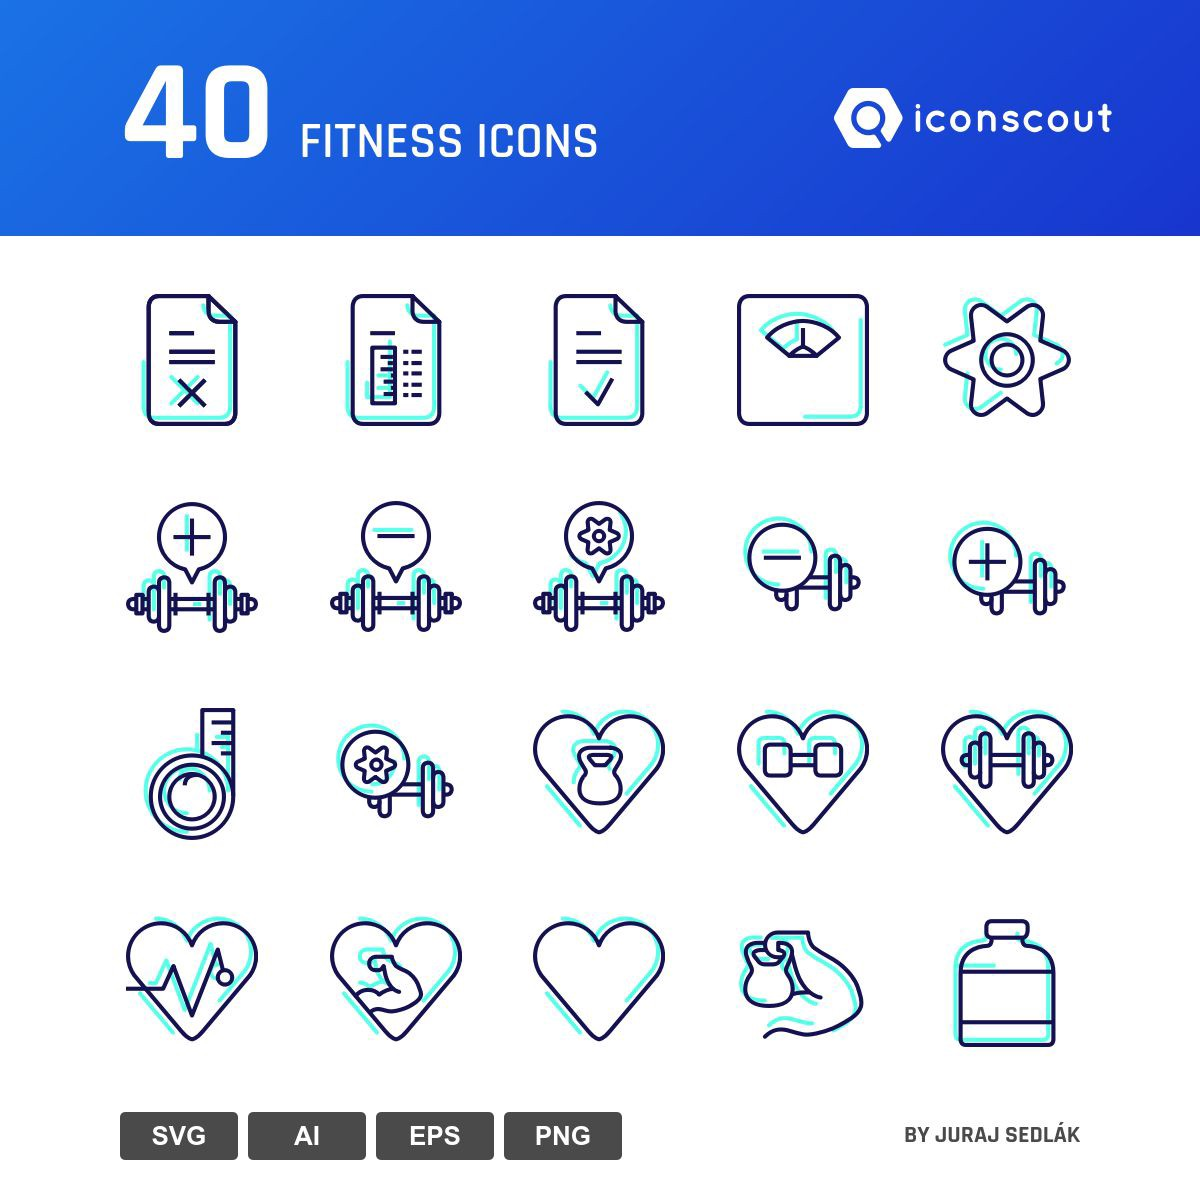 Fitness icons by Juraj Sedlák